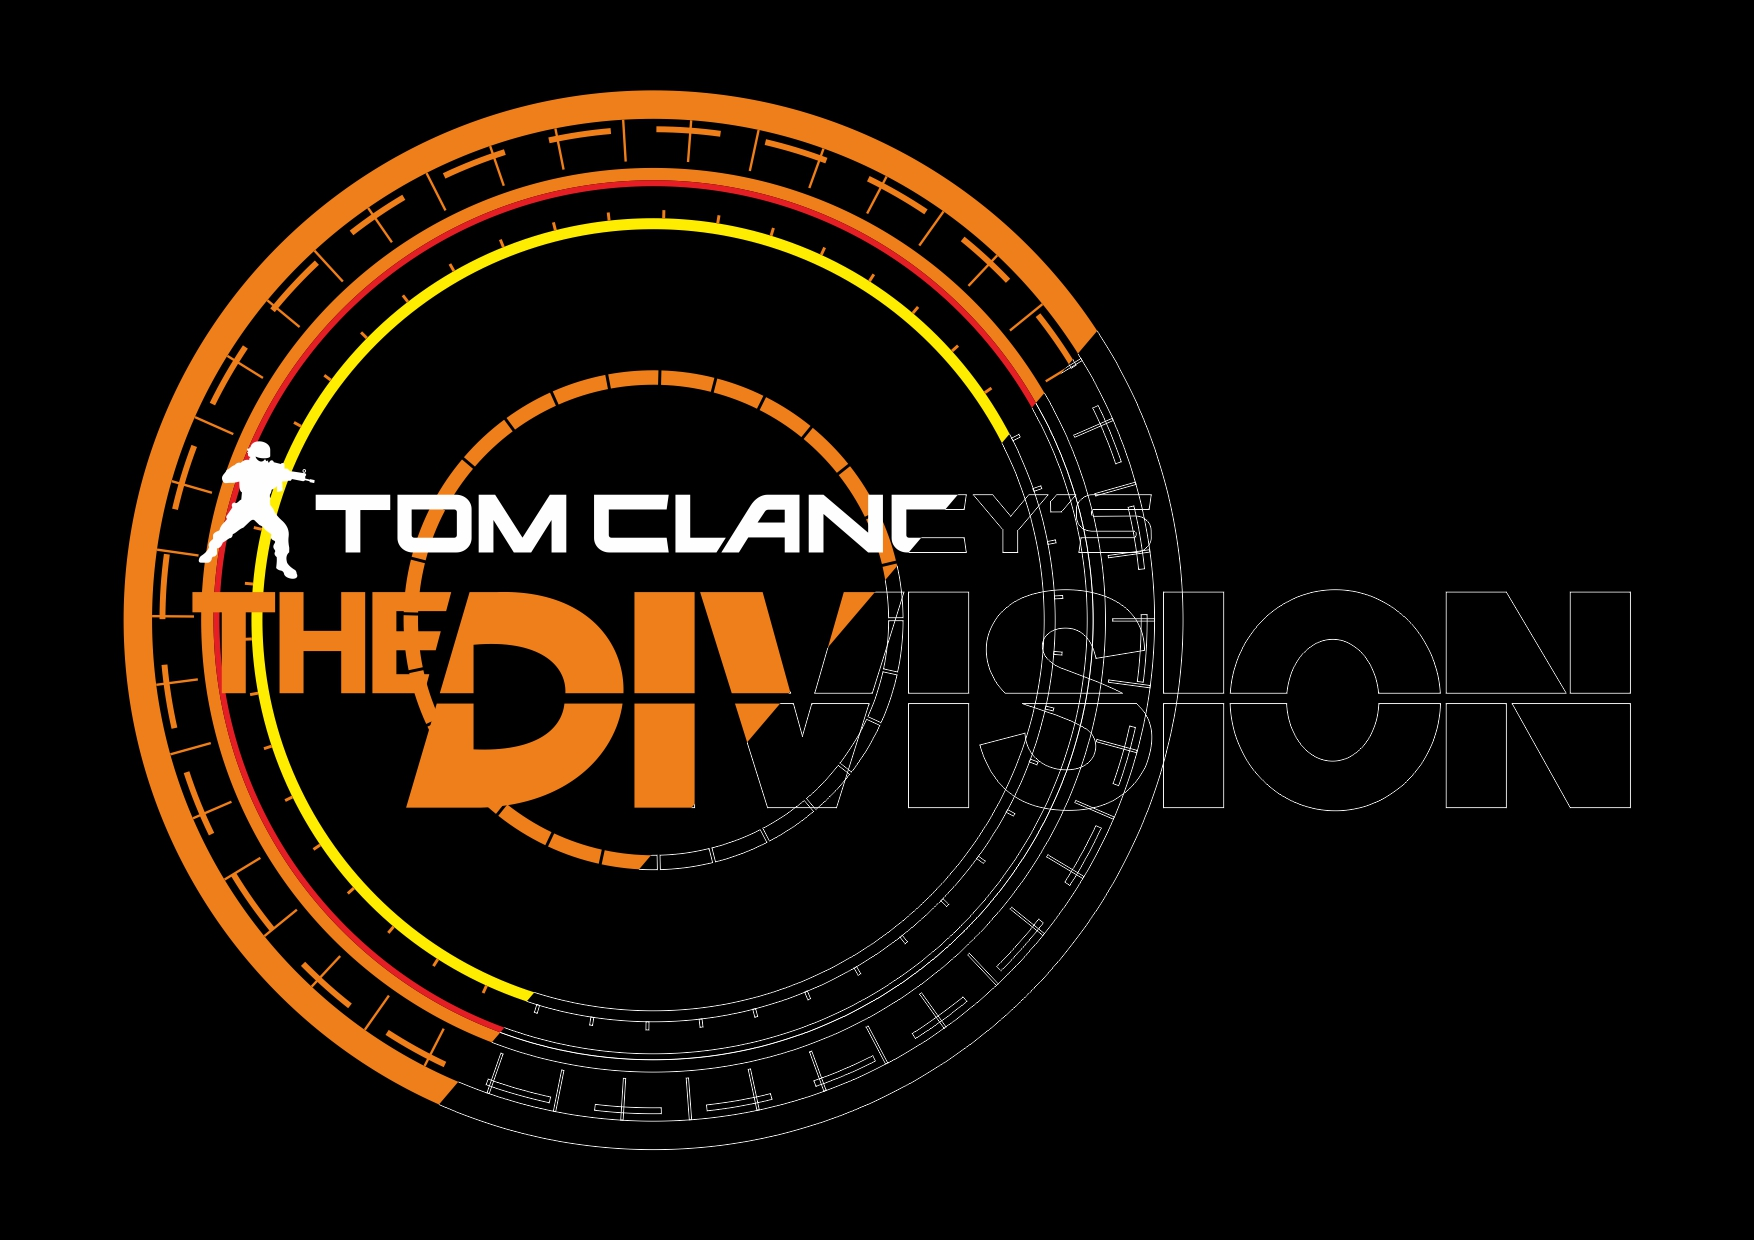 Tom Clancy's The Division Logo Vector By PechiCZE On